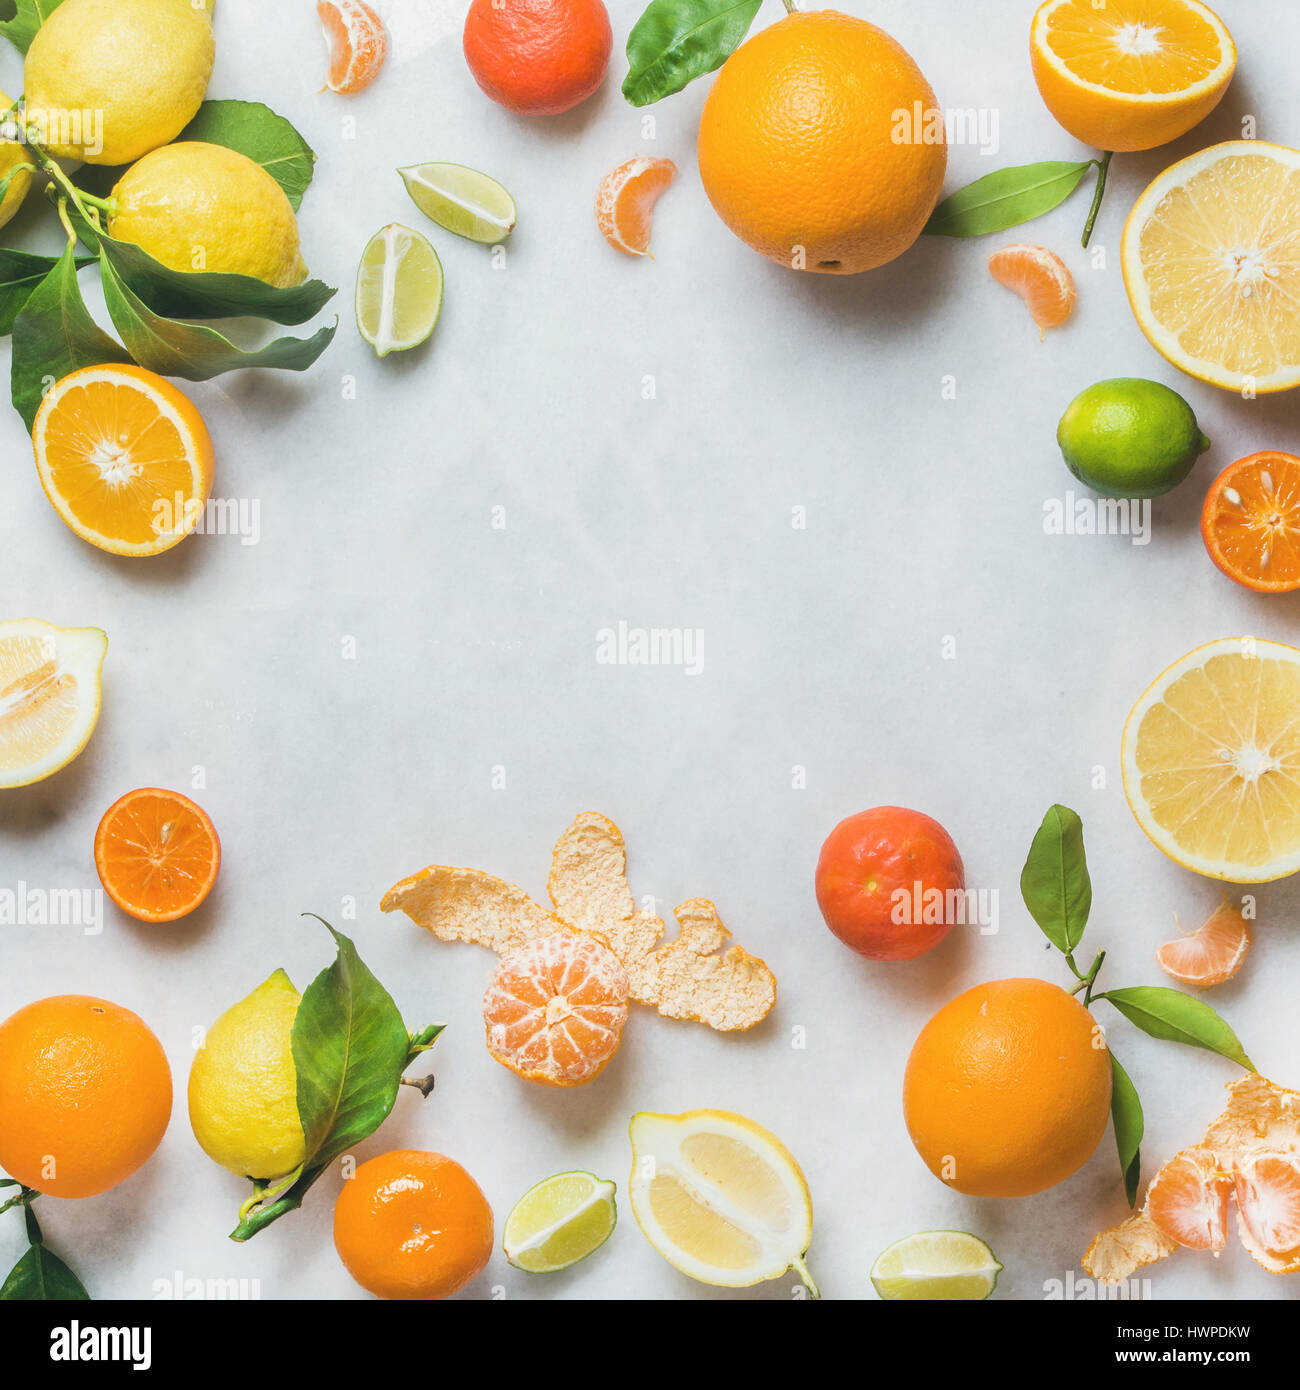 Variety of fresh citrus fruit for making juice or smoothie Stock Photo